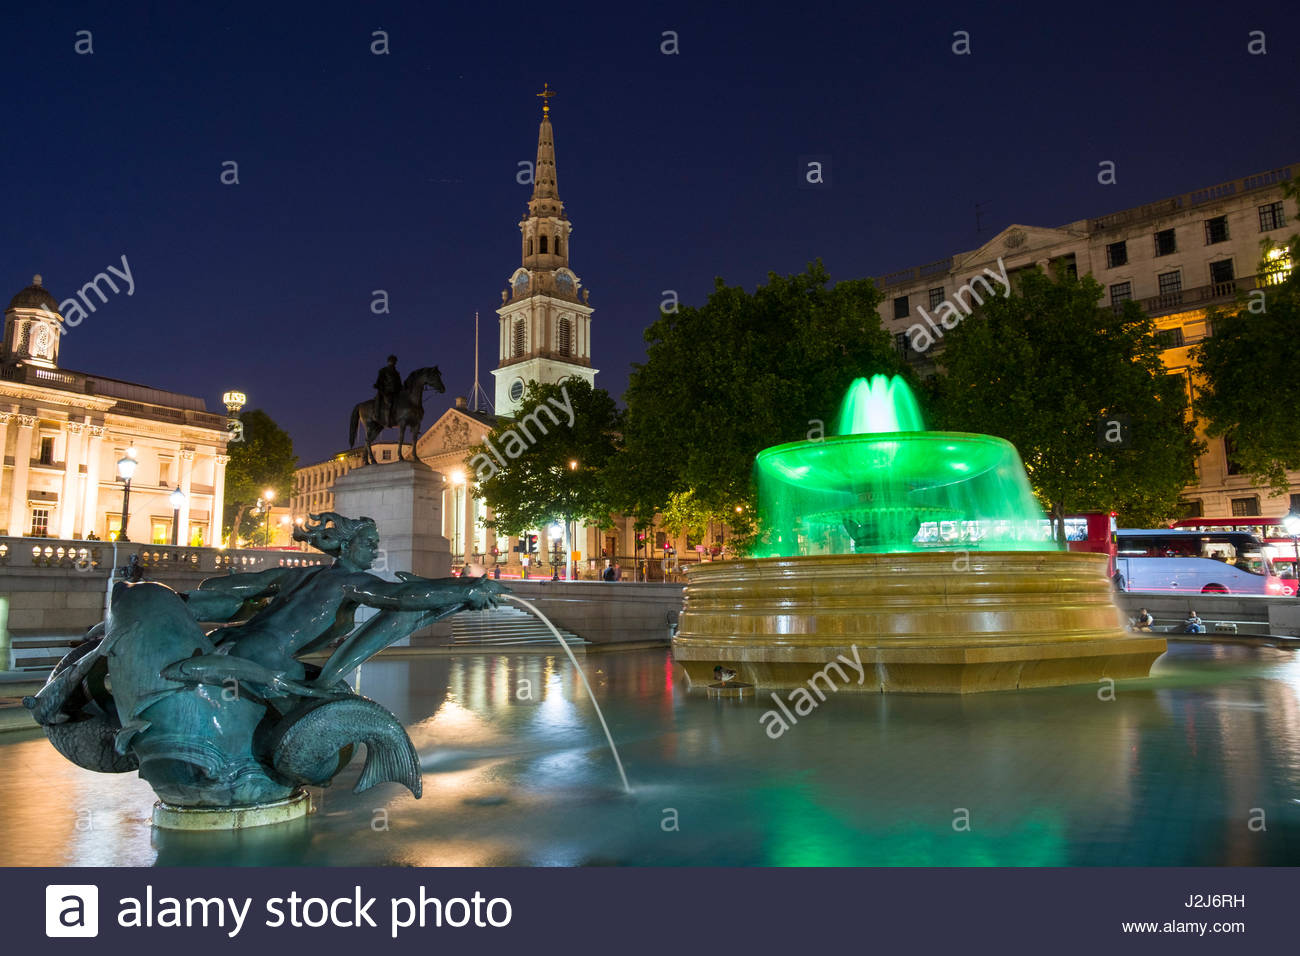 Water fountain and water sculpture in Trafalgar Square with St Martin-in-the-Fields church in the background at - Stock Image